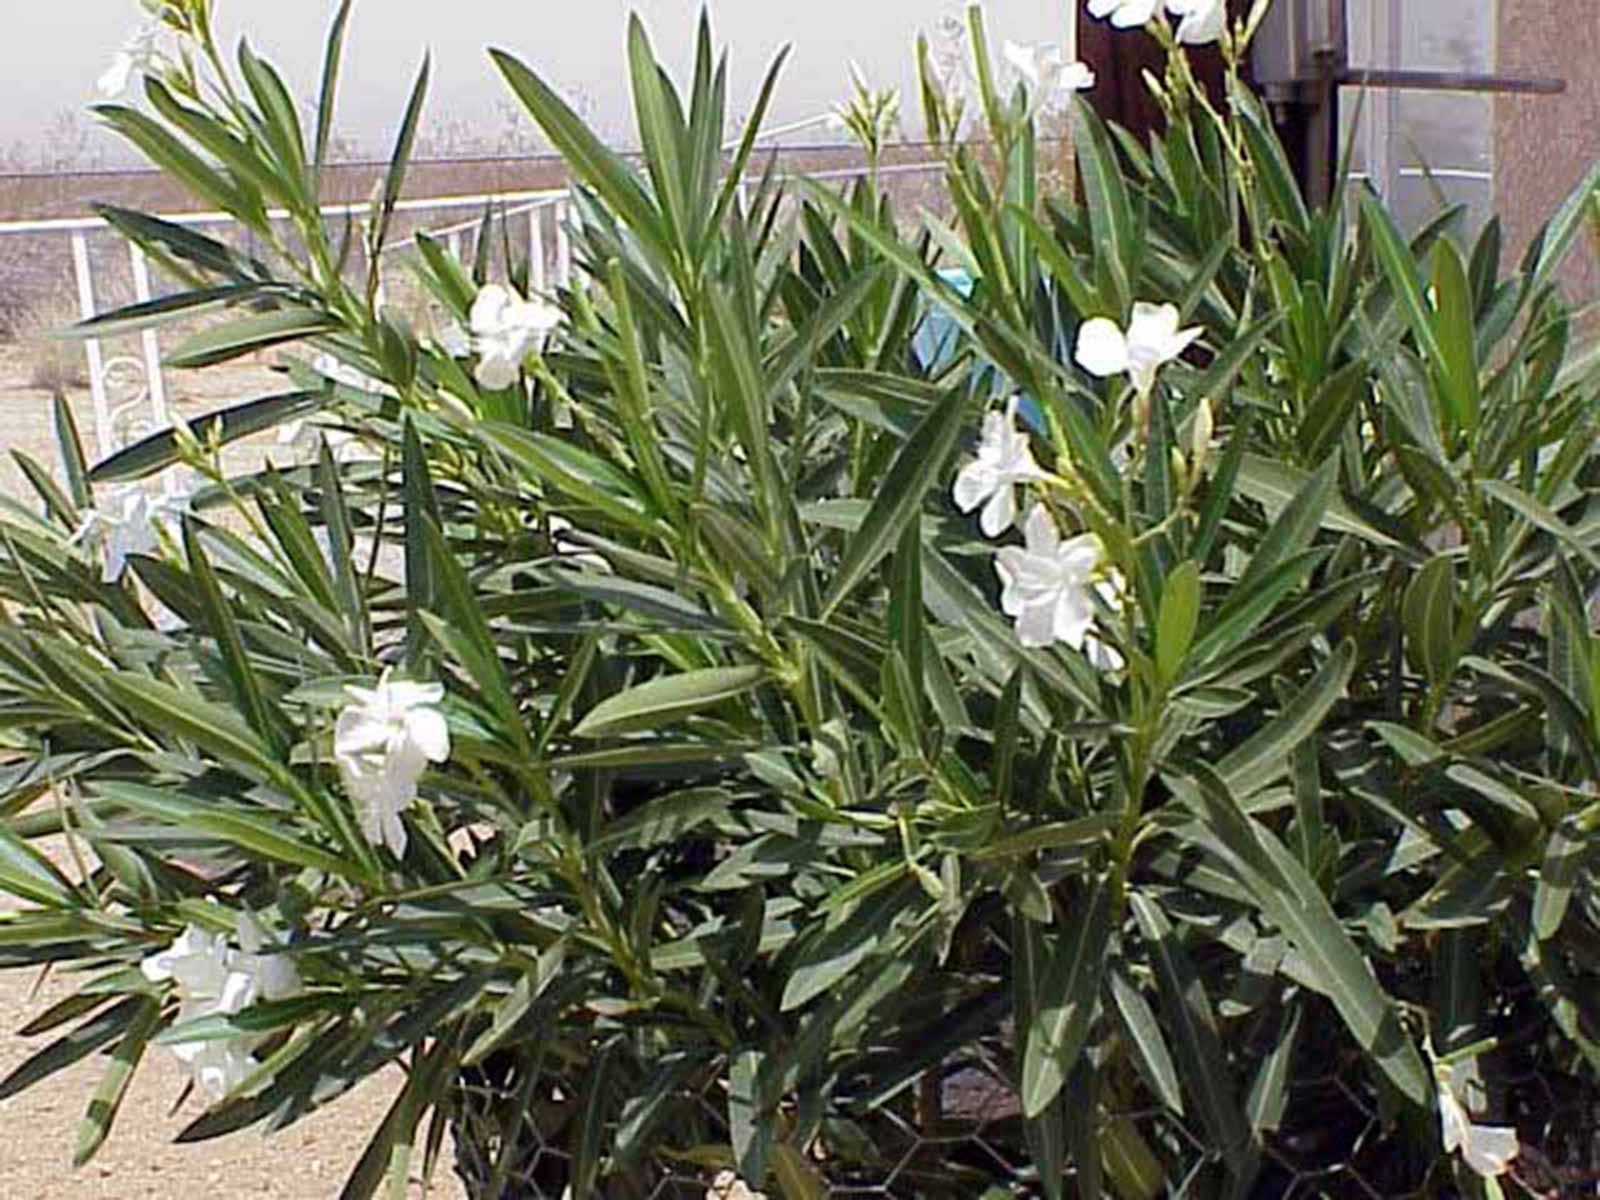 oleander-shrub-photo-white-blooms